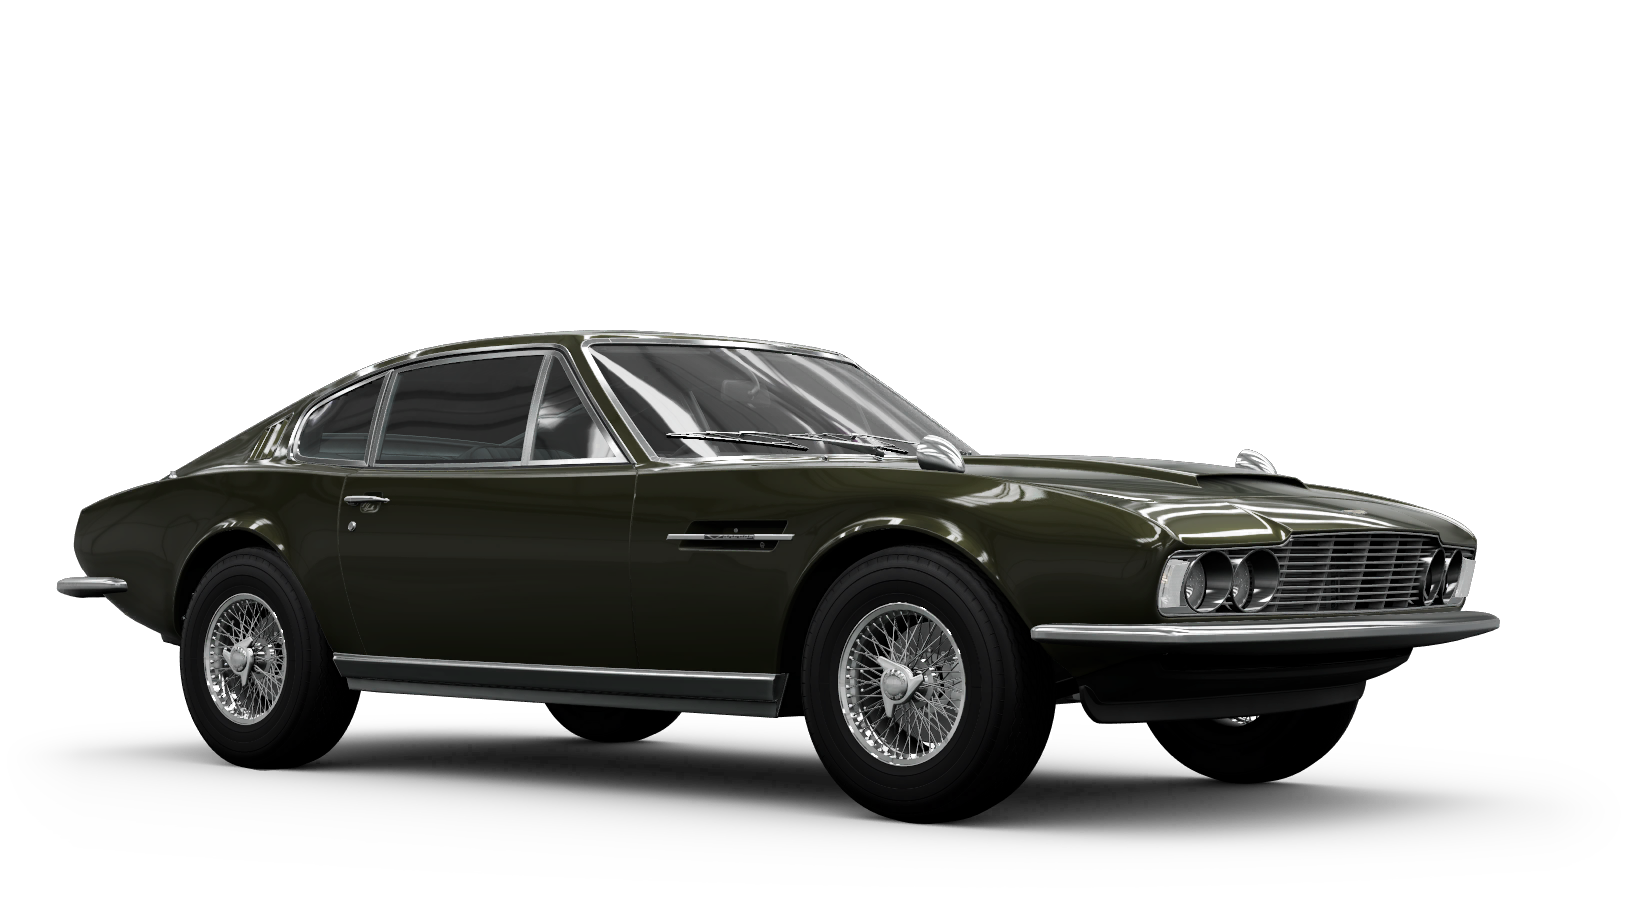 James Bond Edition Aston Martin DBS (1969)